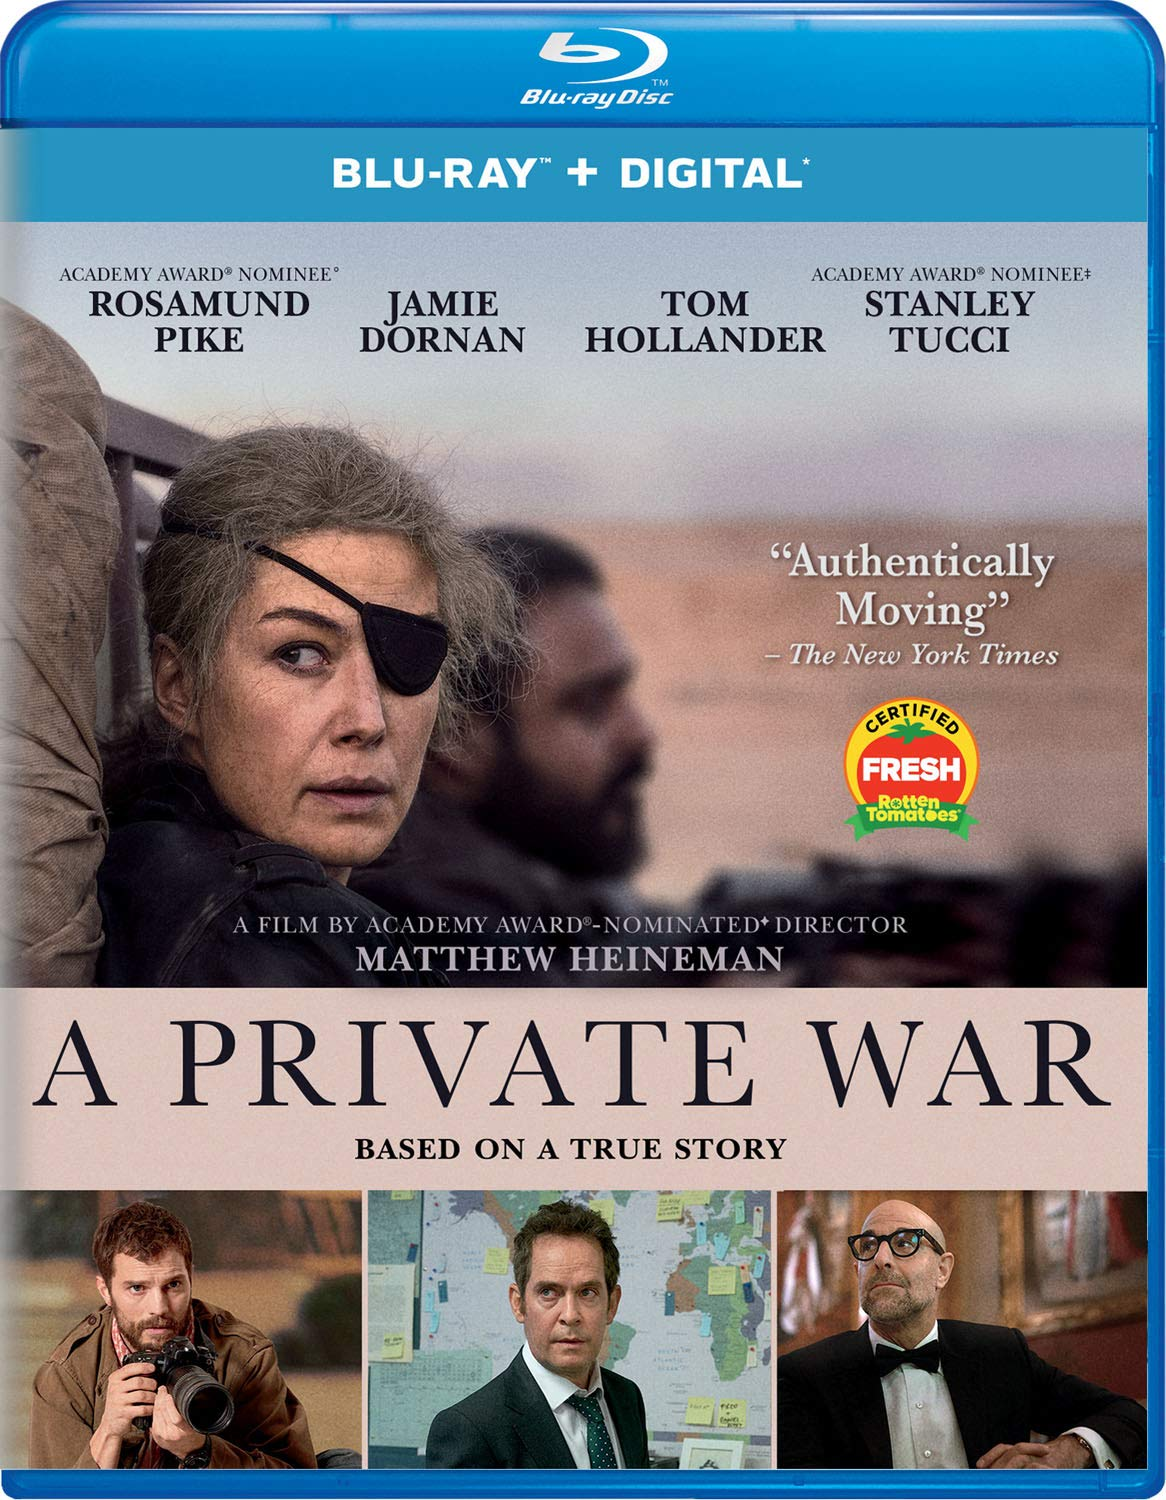 A Private War (2018) poster image